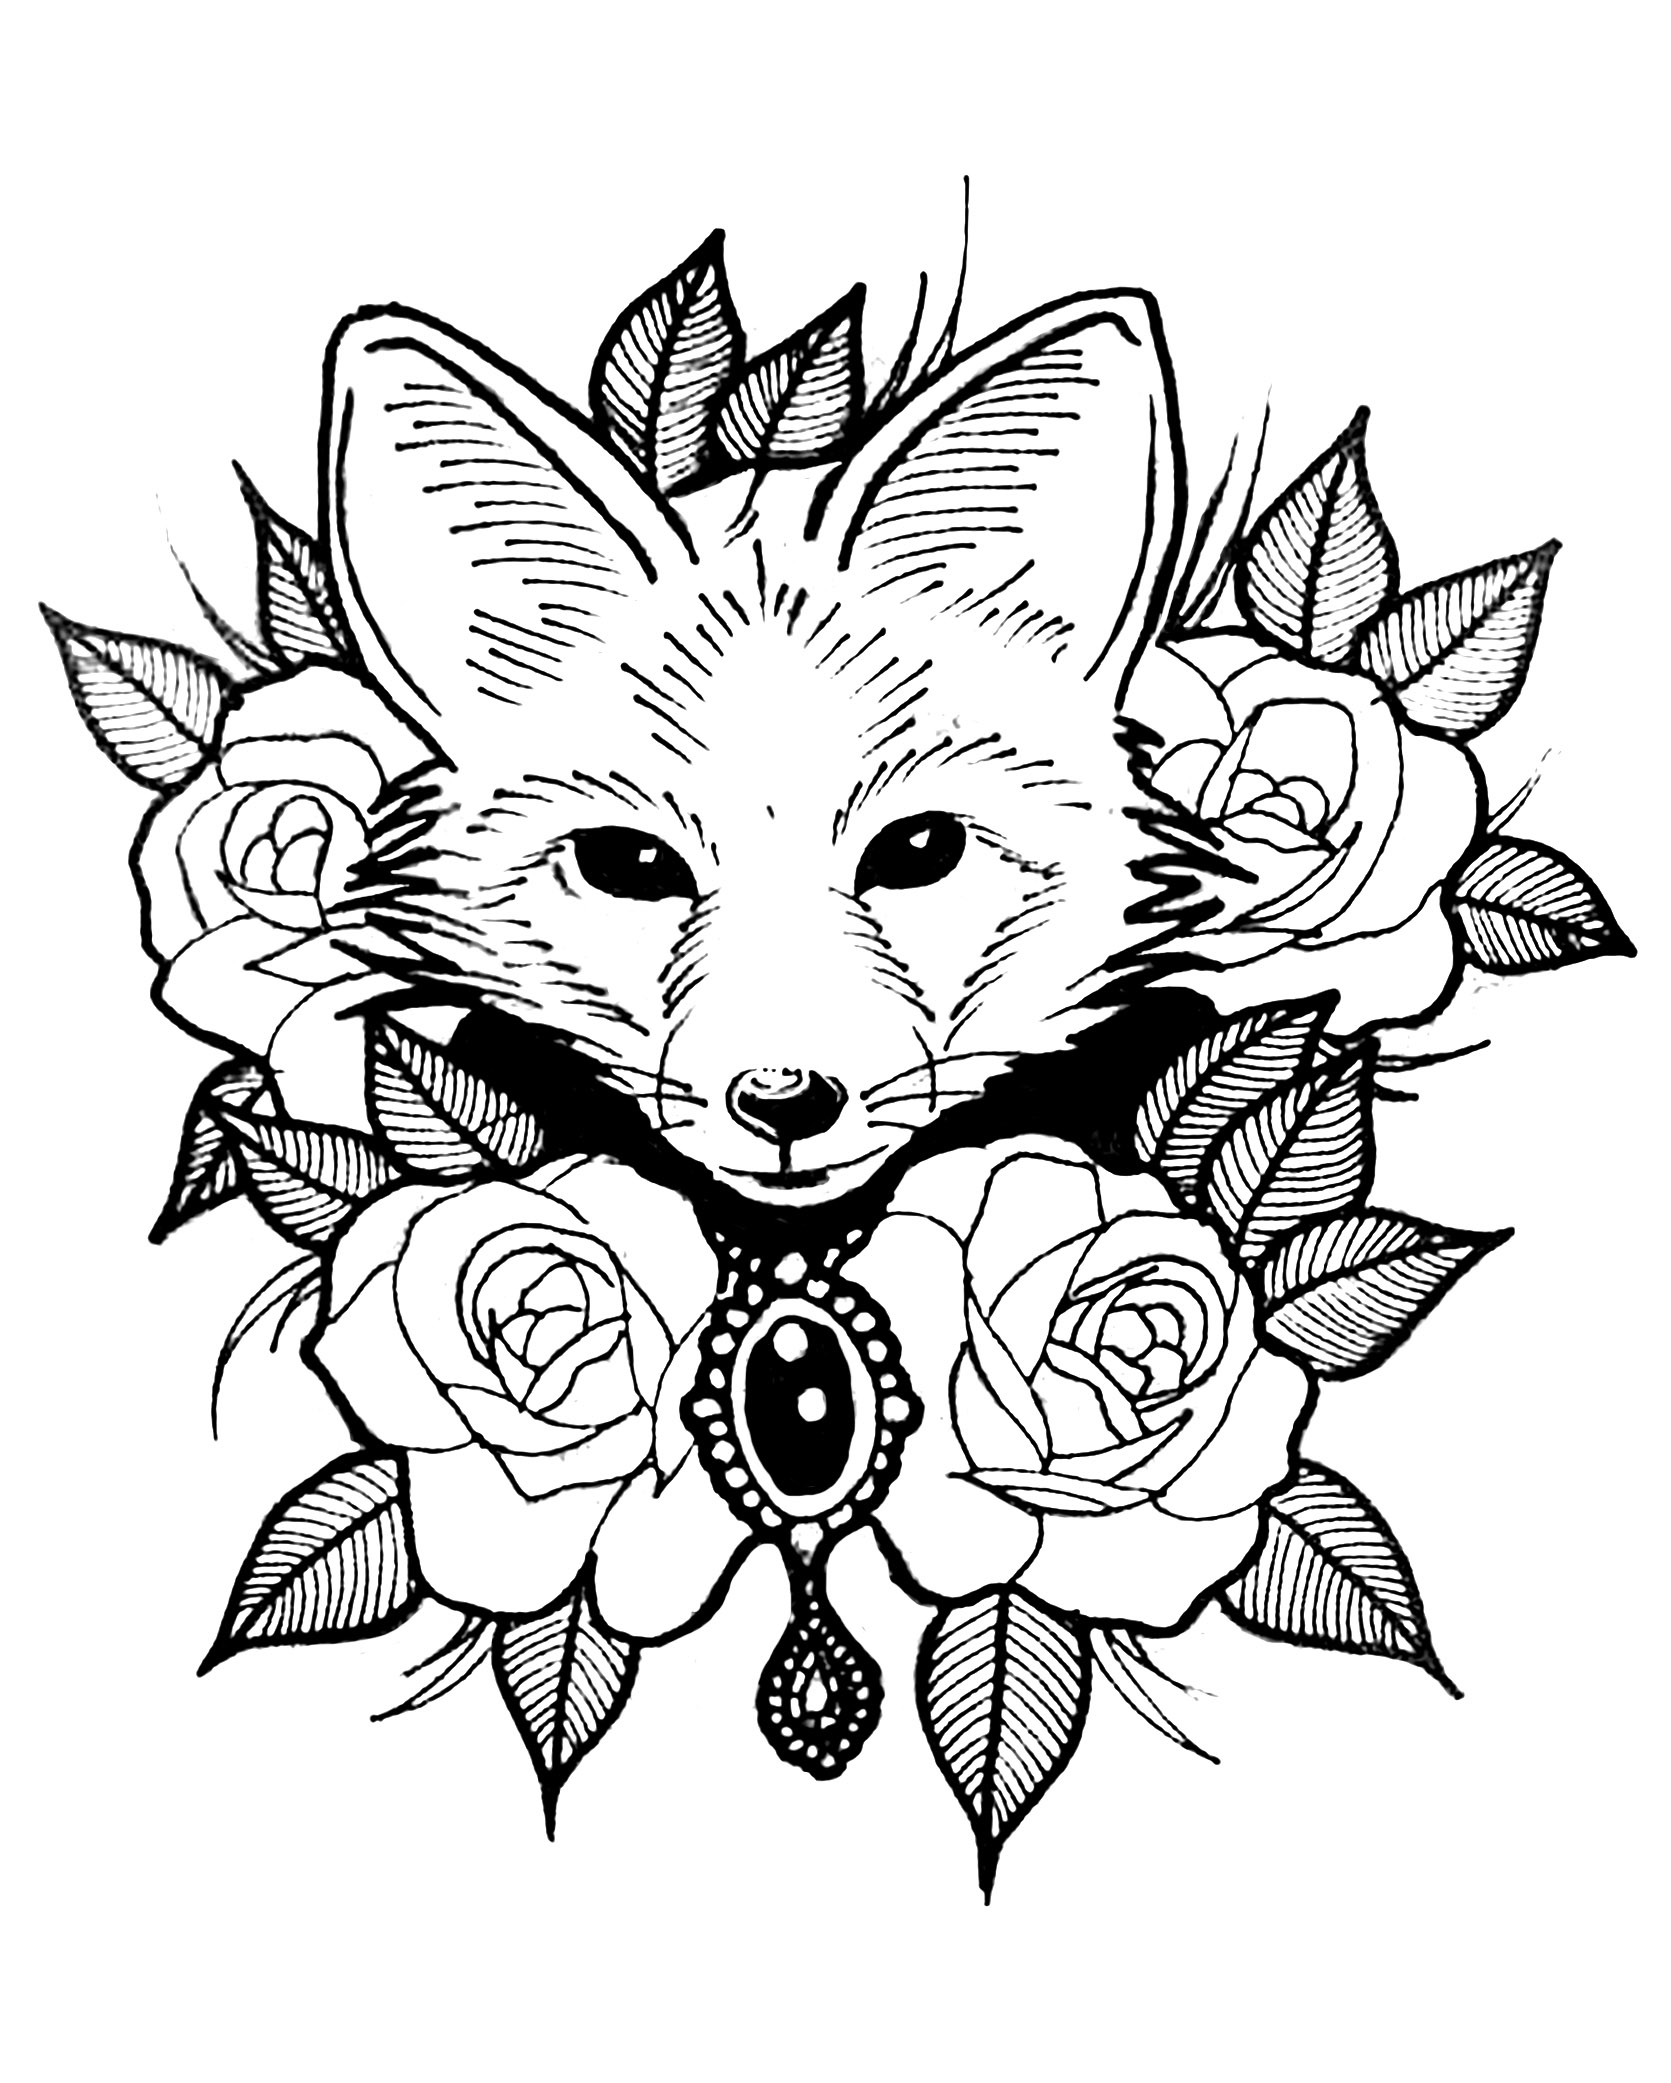 Coloring activities for seniors - Coloring Page Cute Fox With Roses Free To Print